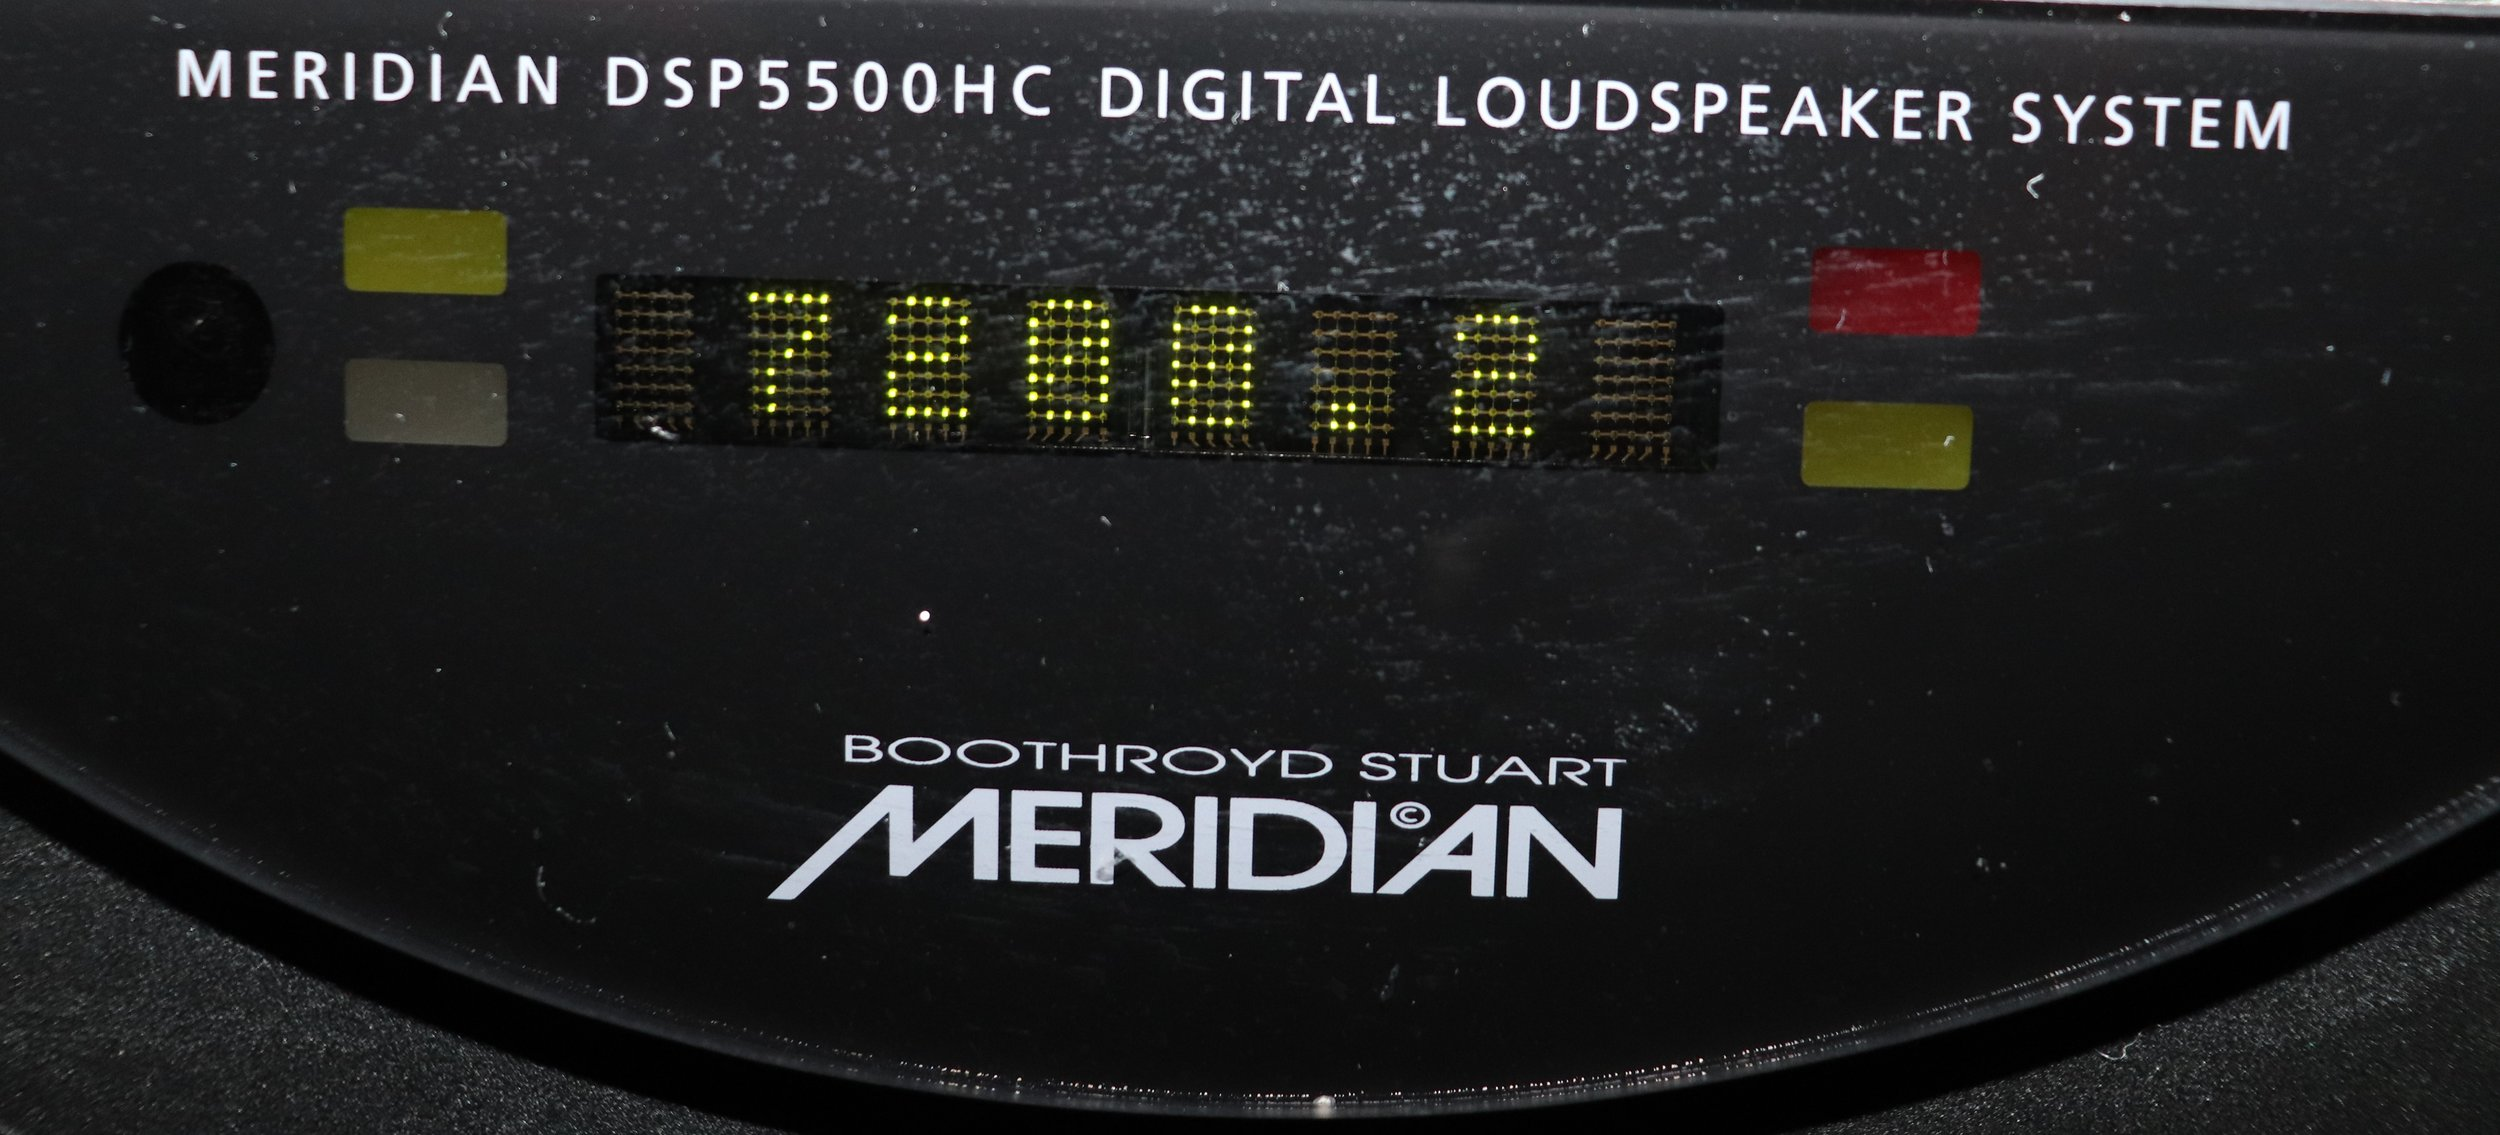 DSP5500HC (.2 Smiley) Eight Character Dot Matrix Display (Introduced 2001 for the .2 Smiley)